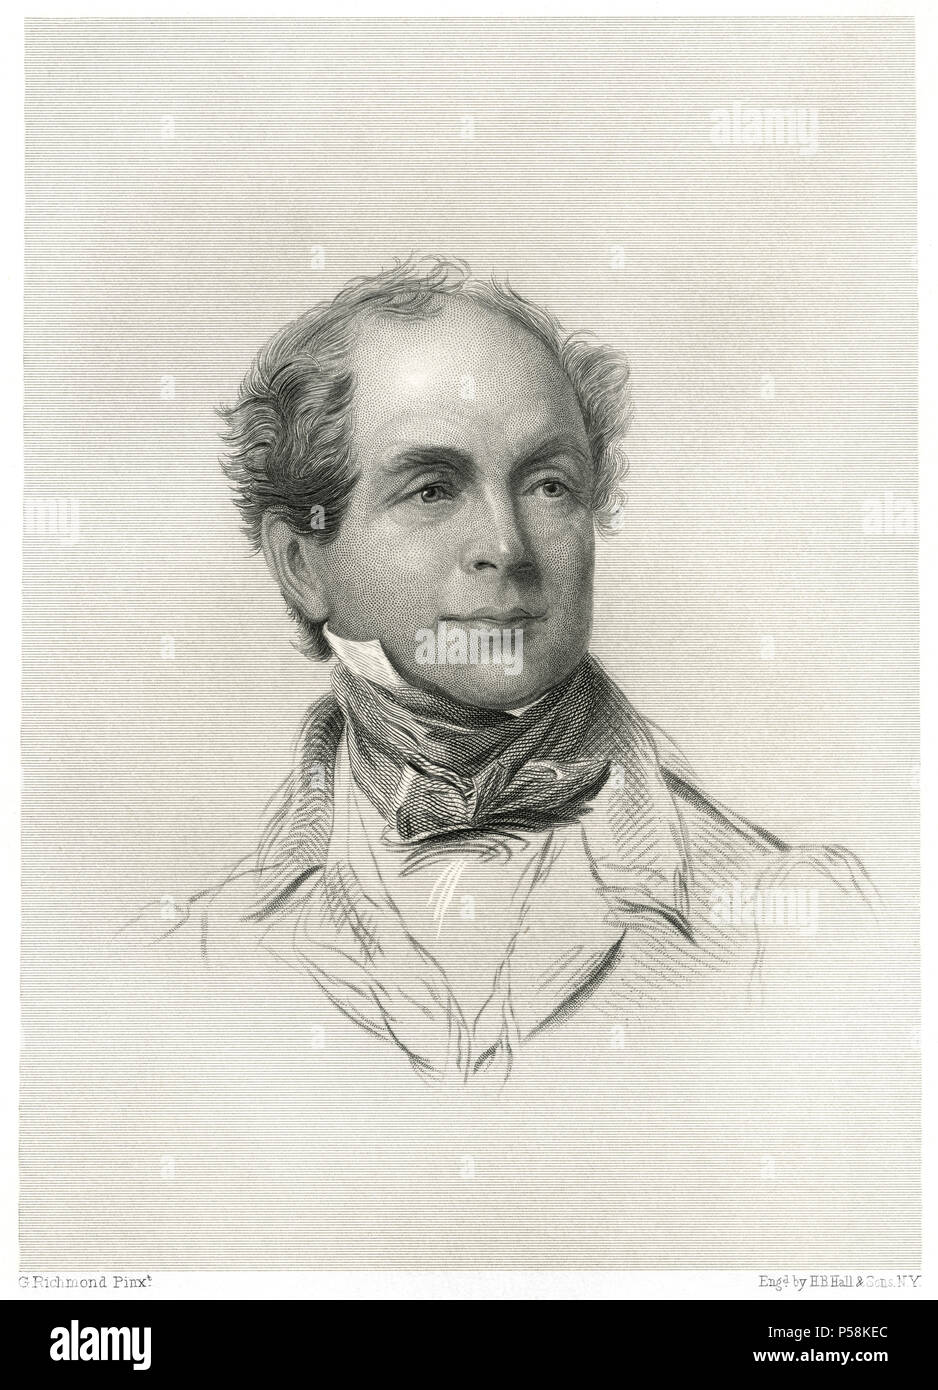 Thomas Moore (1779-1852), Irish Poet, Songwriter and Entertainer, Head and Shoulders Portrait, Engraving by H.B. Hall & Sons, 1876 - Stock Image